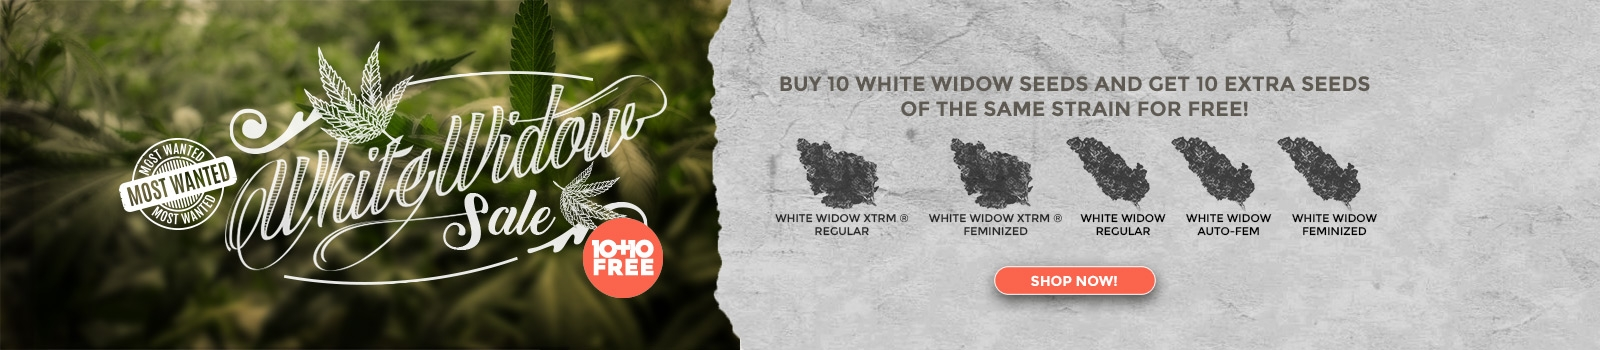 White Widow Sale